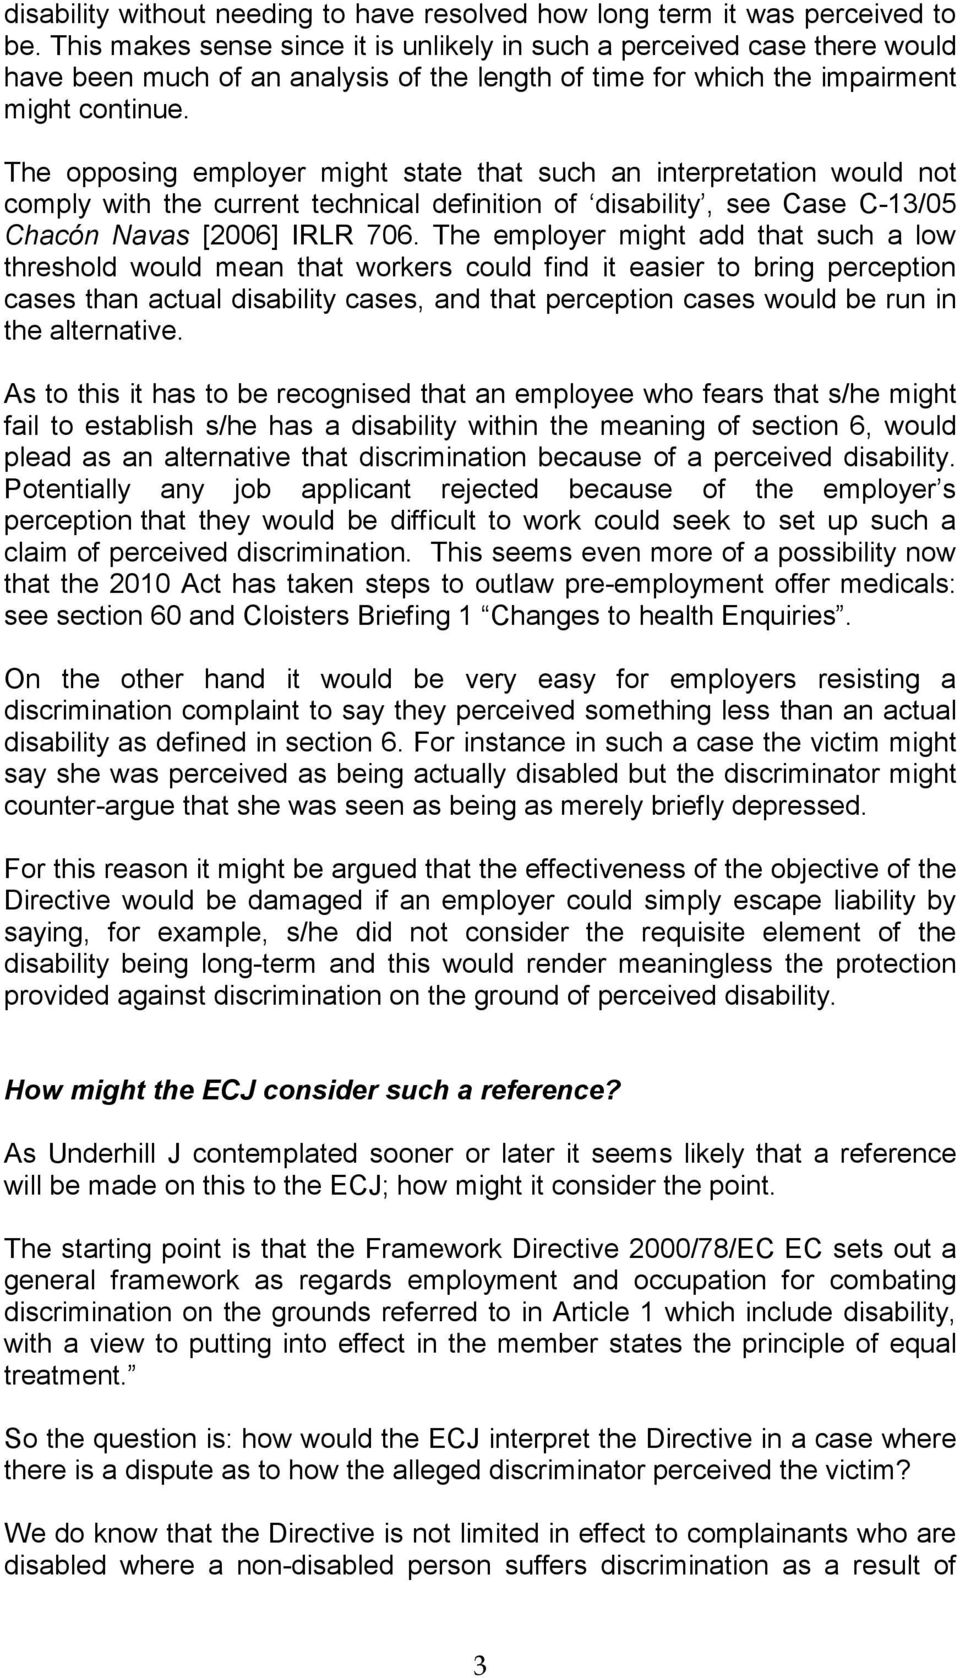 The opposing employer might state that such an interpretation would not comply with the current technical definition of disability, see Case C-13/05 Chacón Navas [2006] IRLR 706.